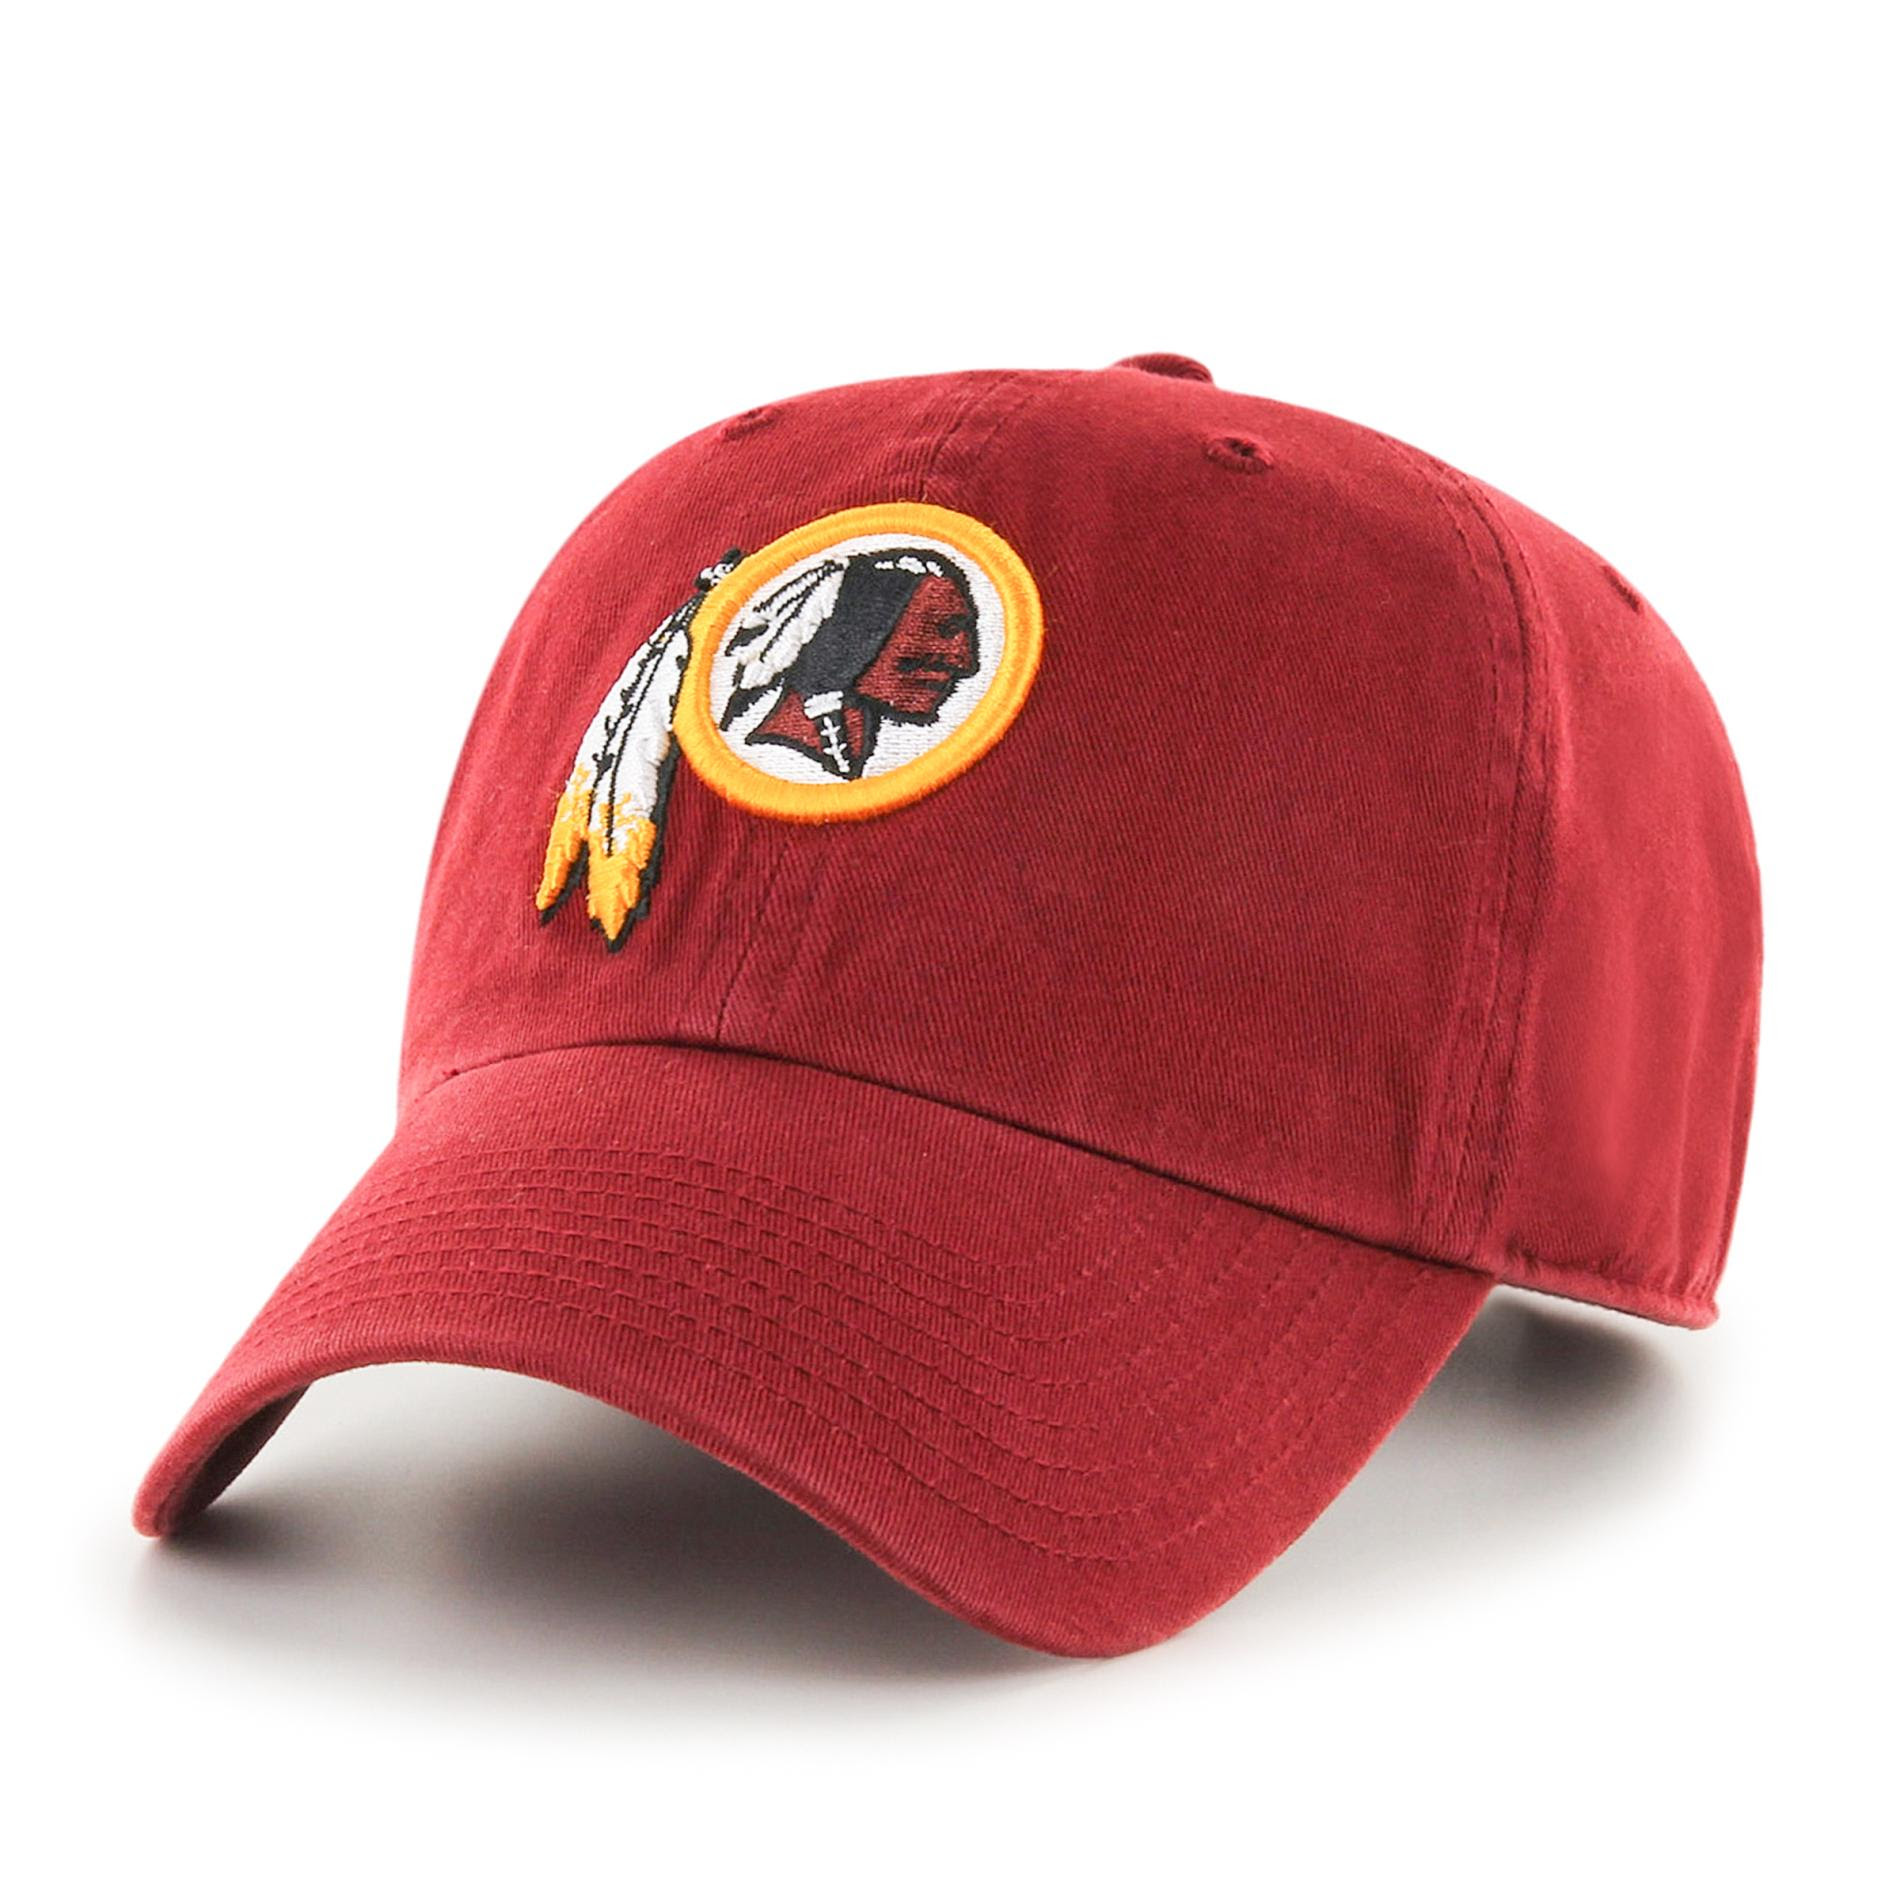 NFL Mens Baseball Hat  Washington Redskins